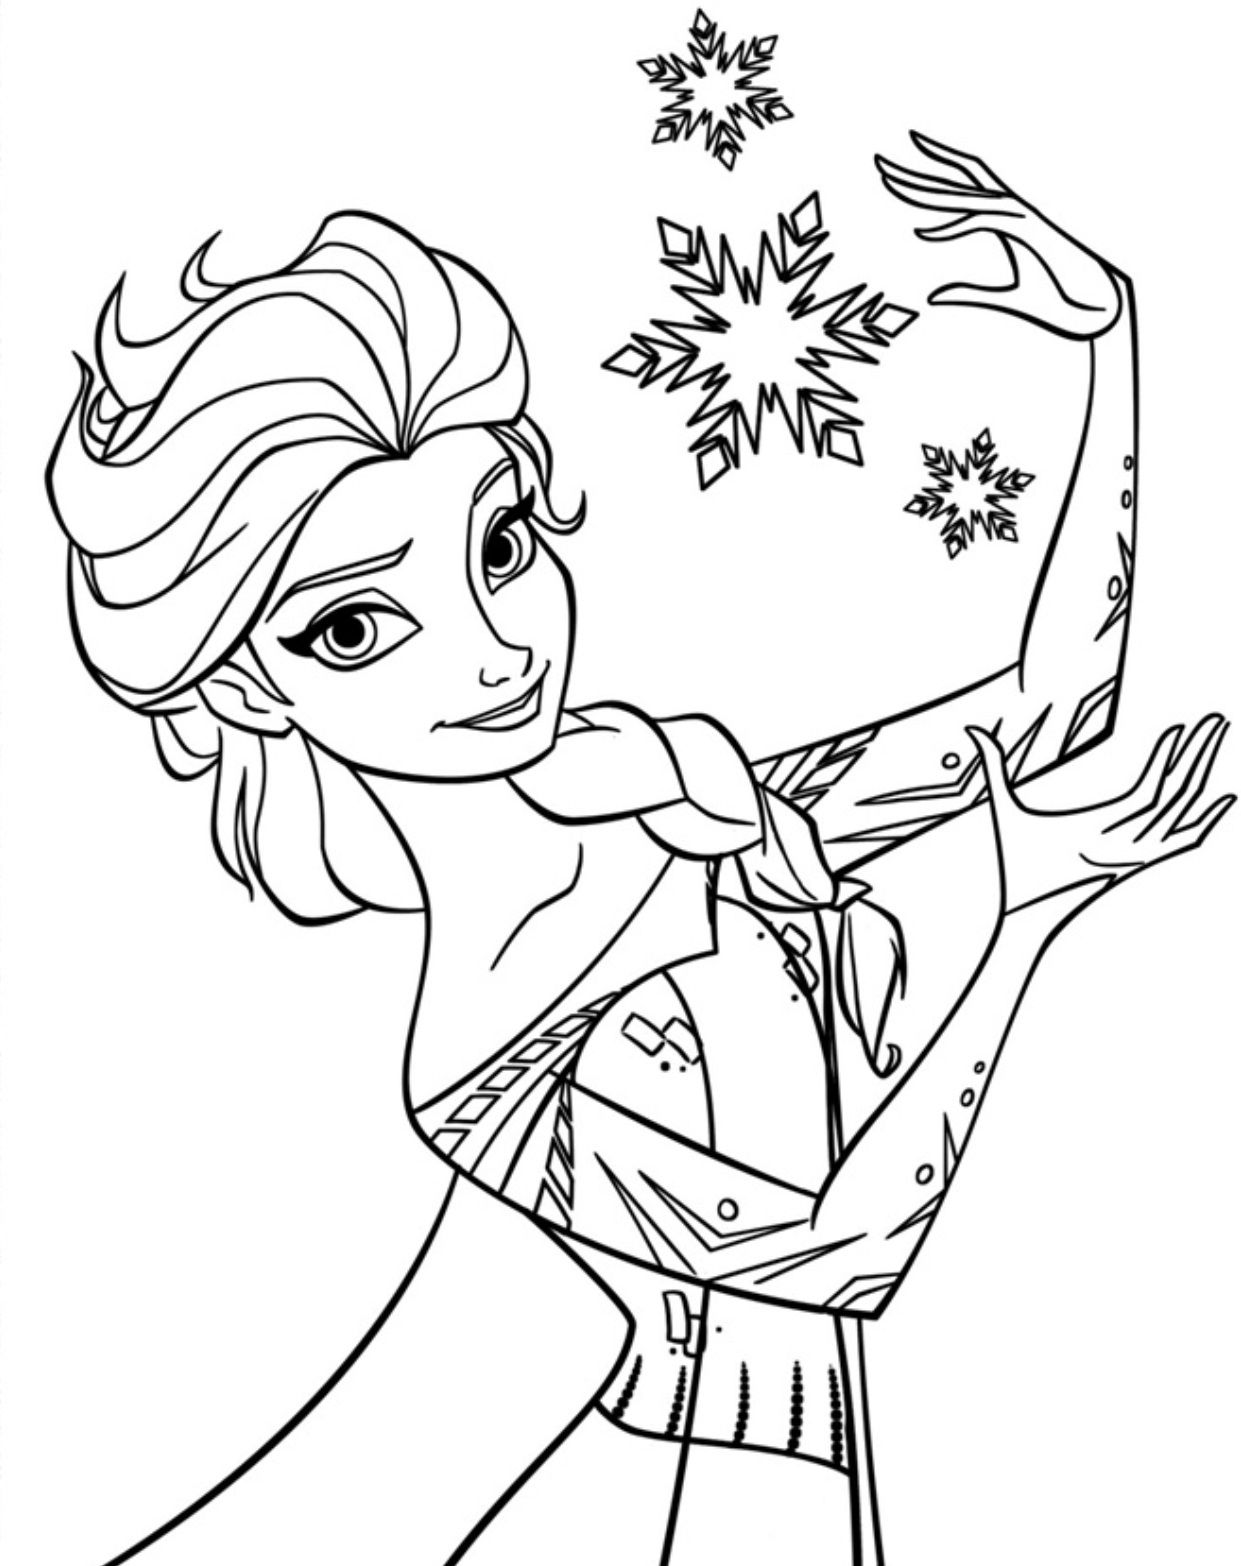 Frozen Coloring Pages Elsa | Free coloring pages | ️Coloring Pages ...